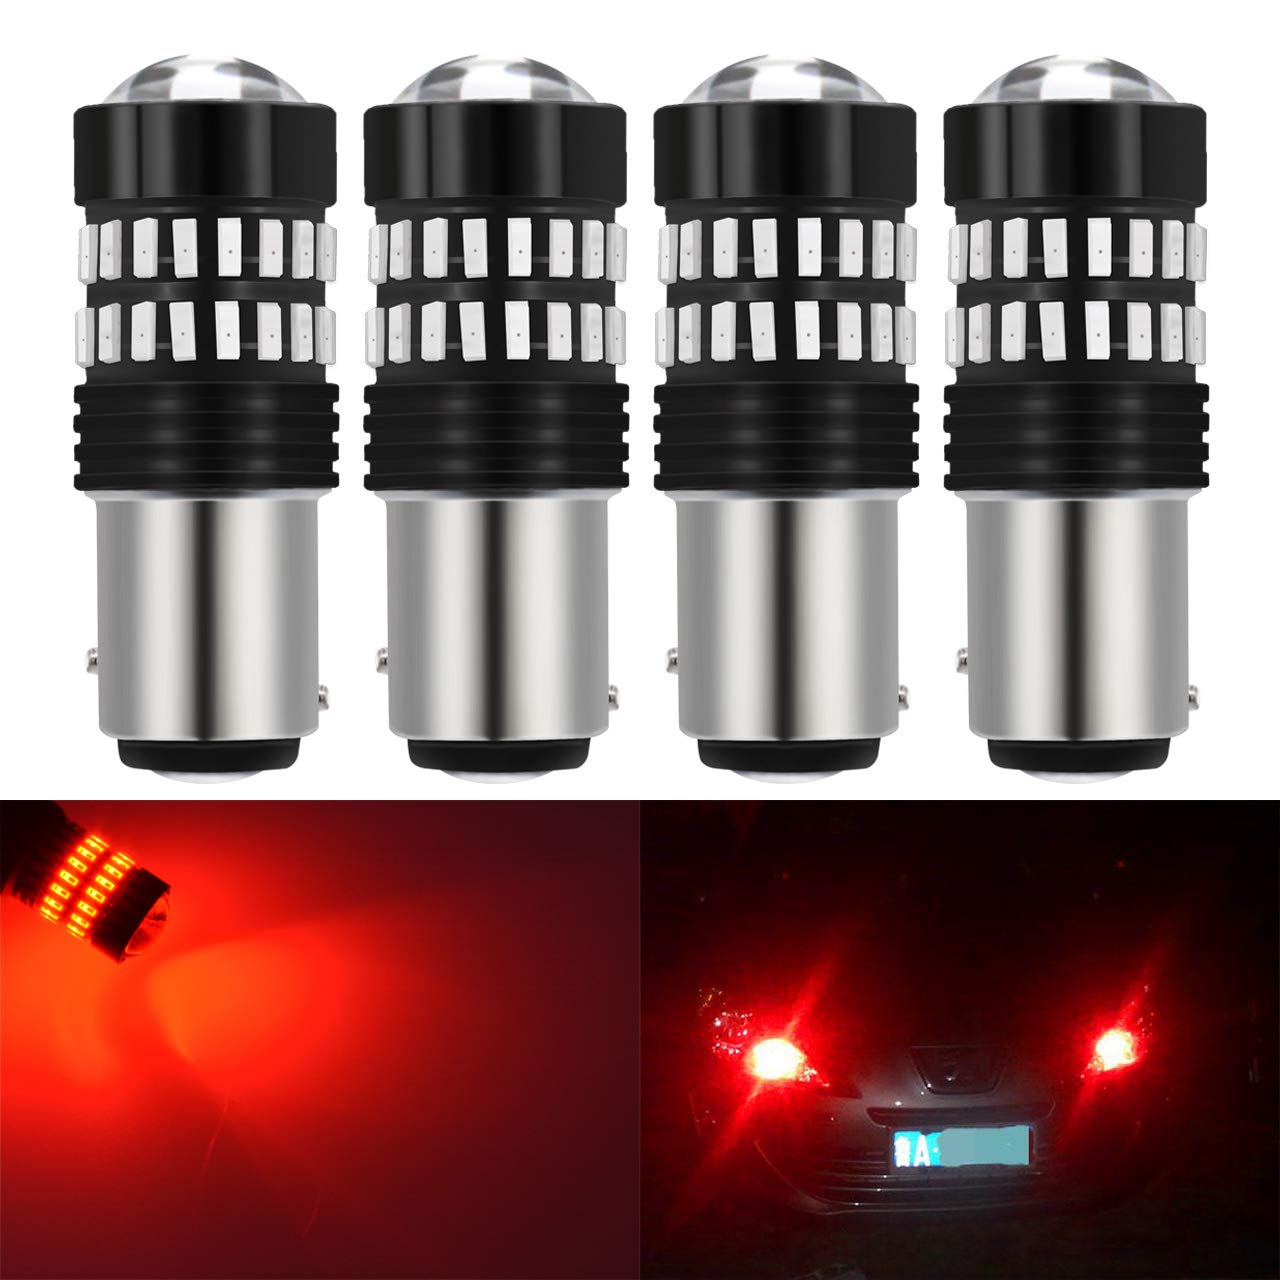 KaTur Extremely Bright 1200LM 4014SMD 48-EX Chipsets 3157 3156 3057 4157 3155 LED Bulbs with Lens Projector Brake Turn Signal Tail Backup Reverse Lights, Brilliant Red DC 12-24V (Pack of 4)